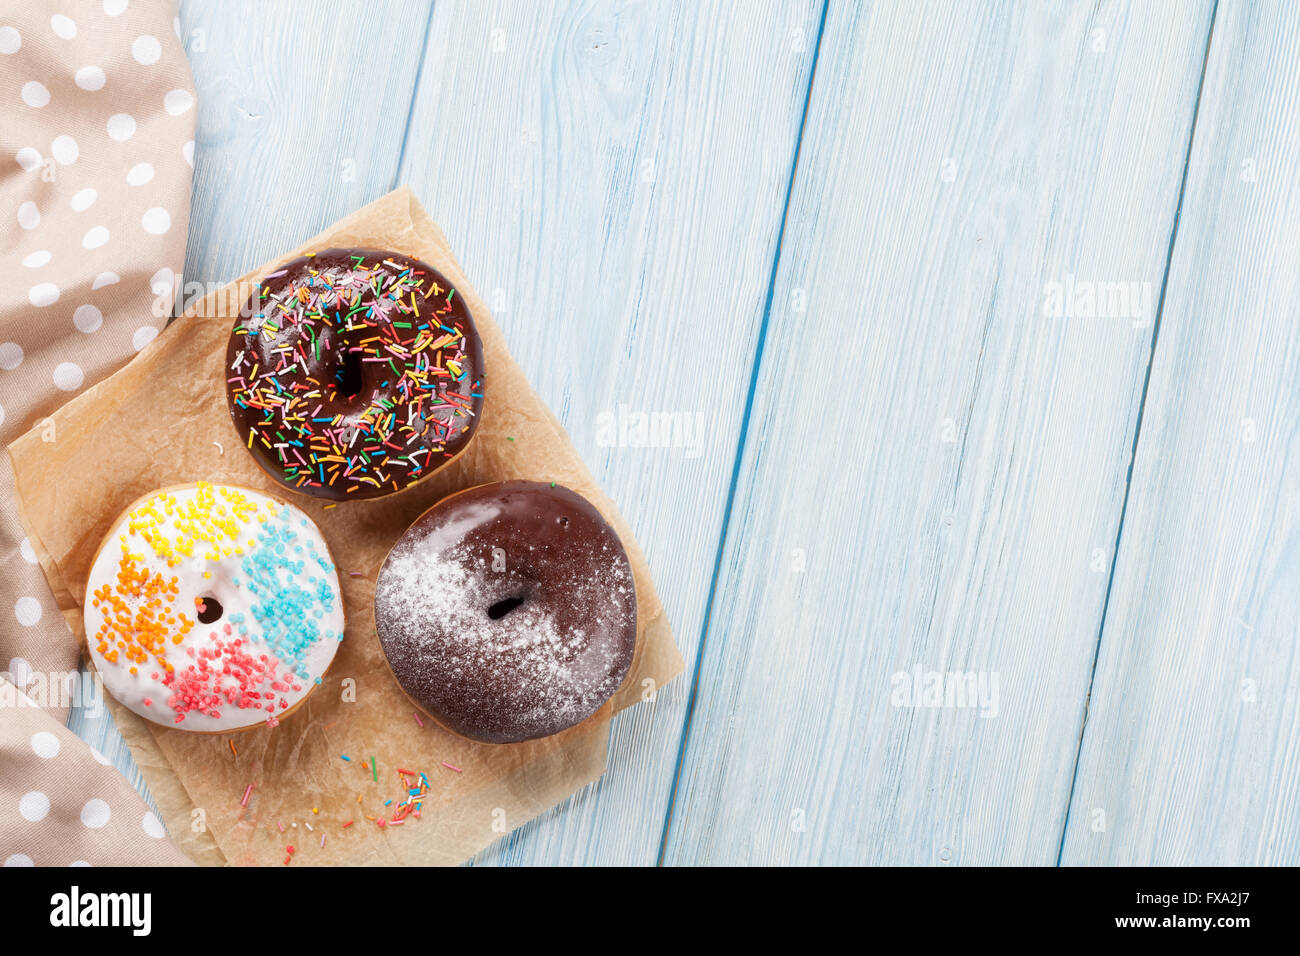 Donuts avec décor coloré sur table en bois. Top View with copy space Photo Stock